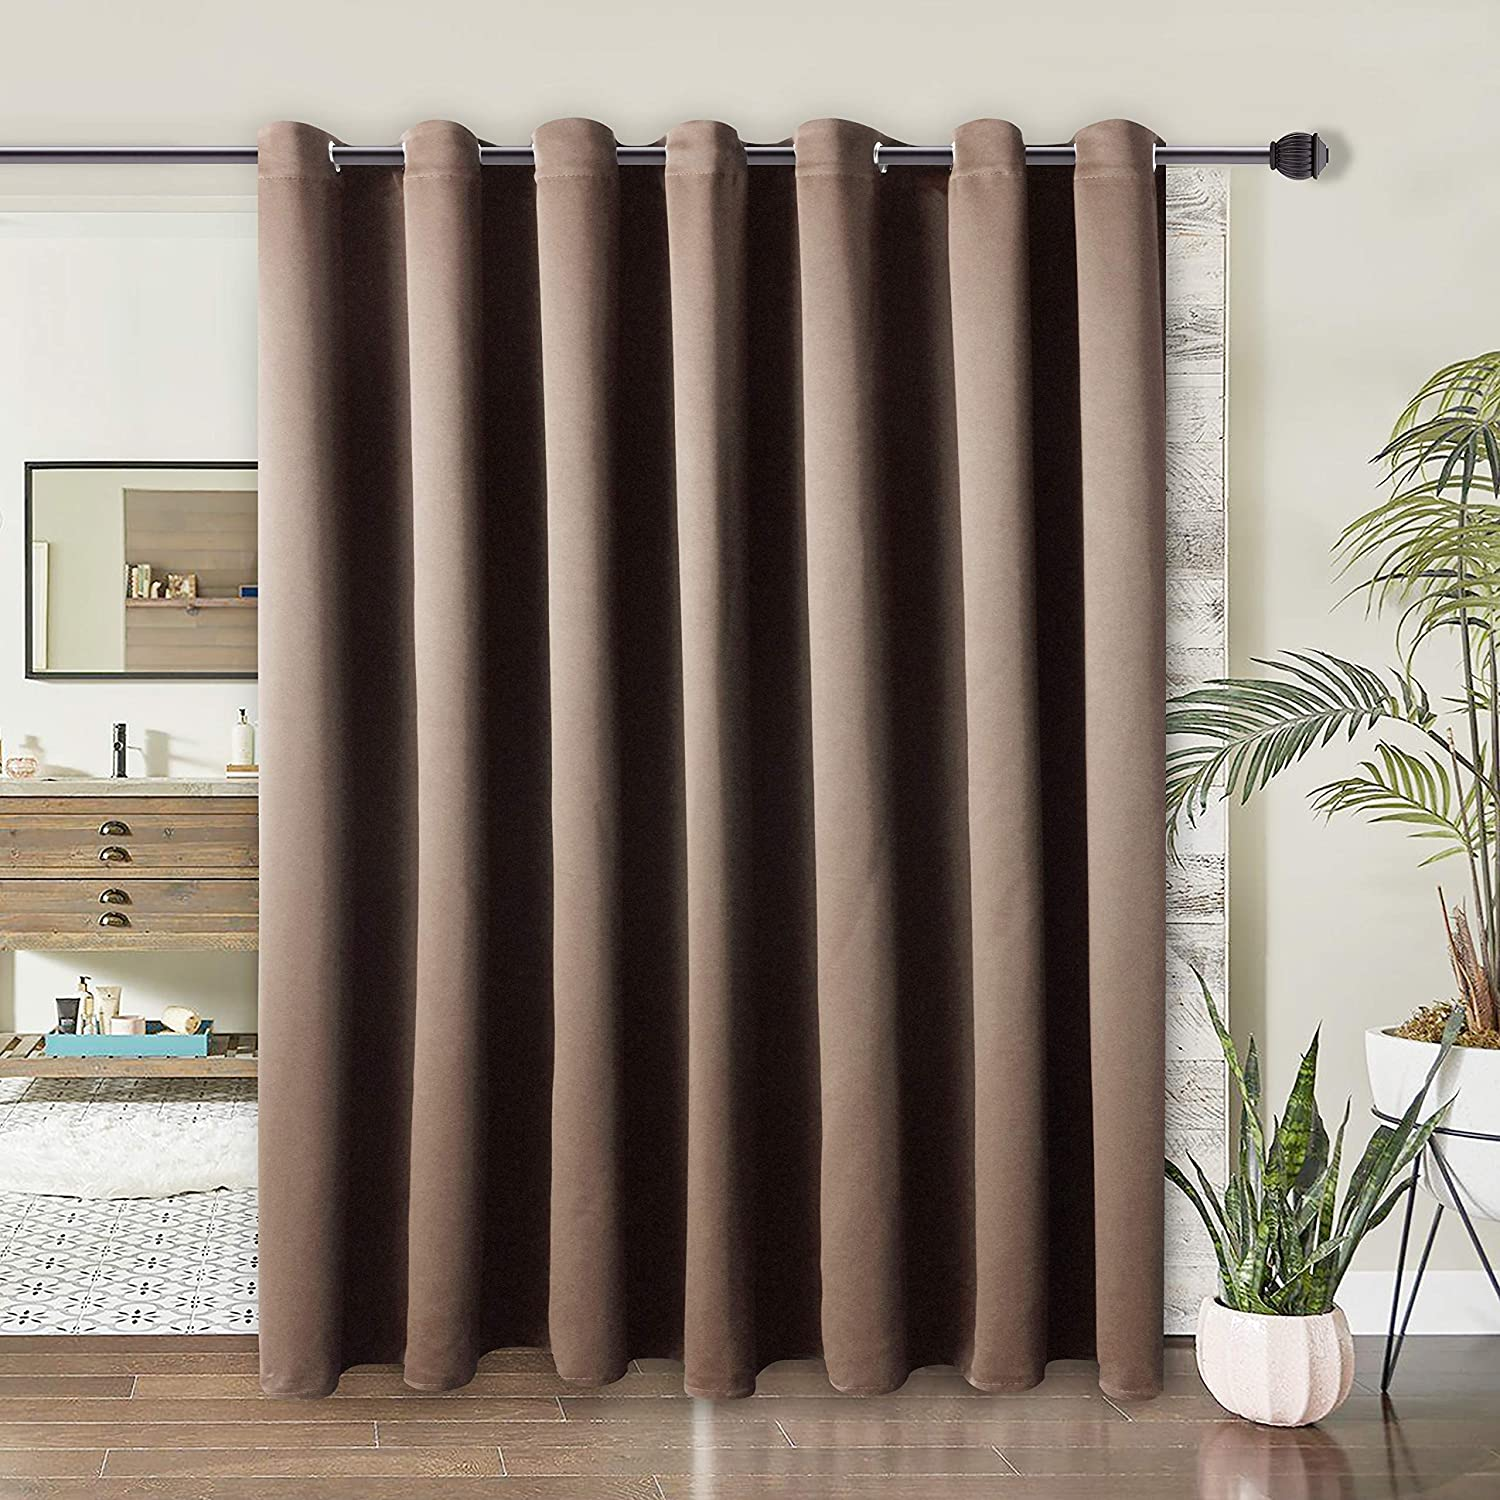 WONTEX 有名な Room Divider Curtain- Privacy Curtains お見舞い Bedr Blackout for